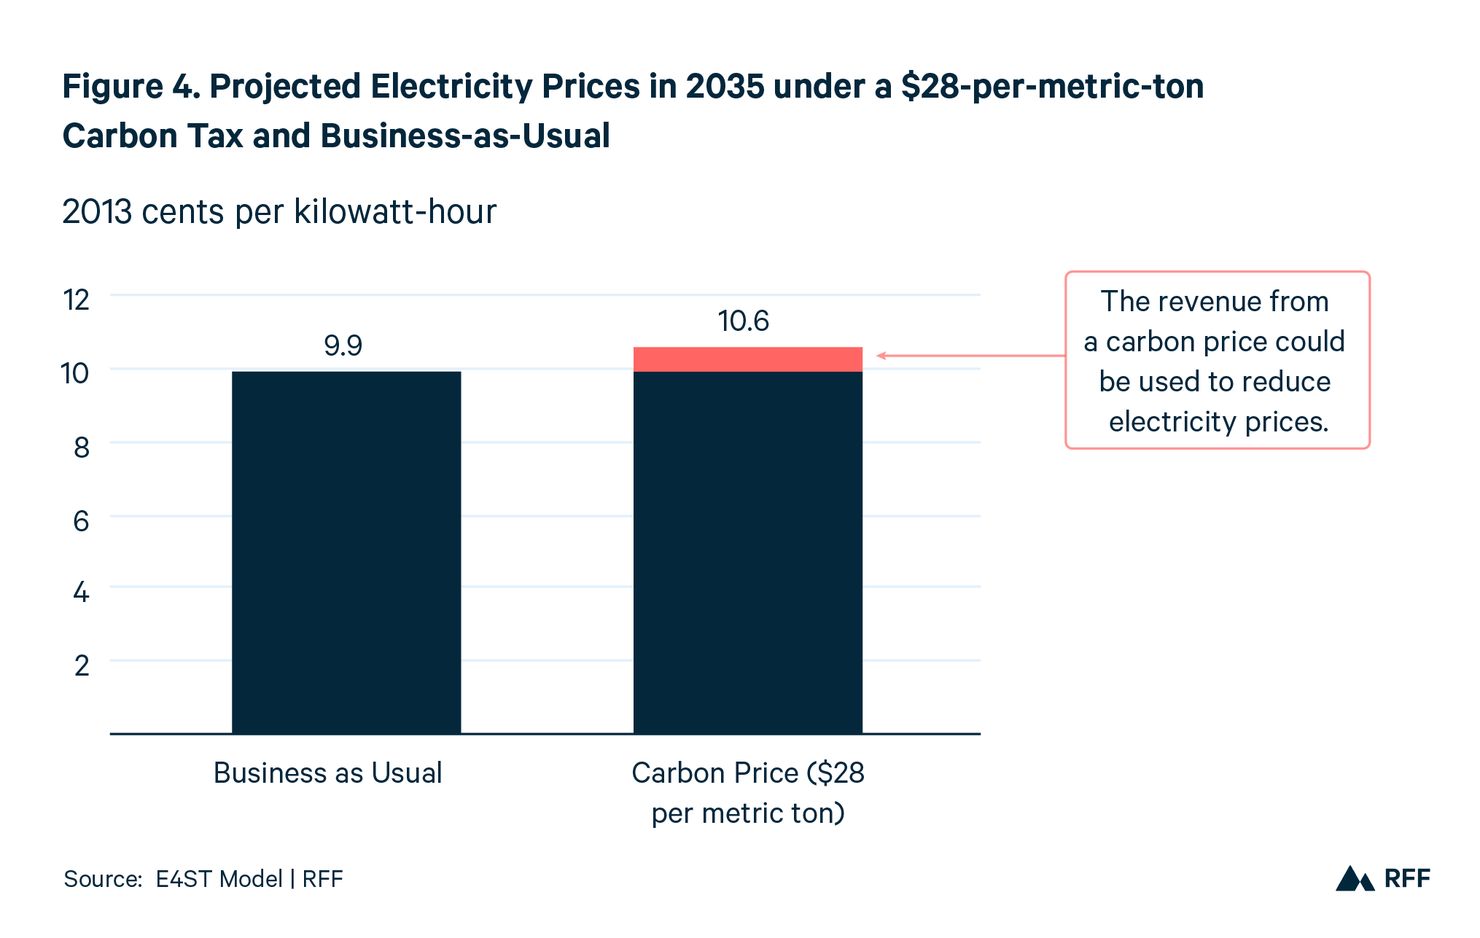 BLNOL-figure-4-projected-electricity-prices-in-2035-under-a-28-ton-carbon-tax-and-business-as-usual-rgb-01.png